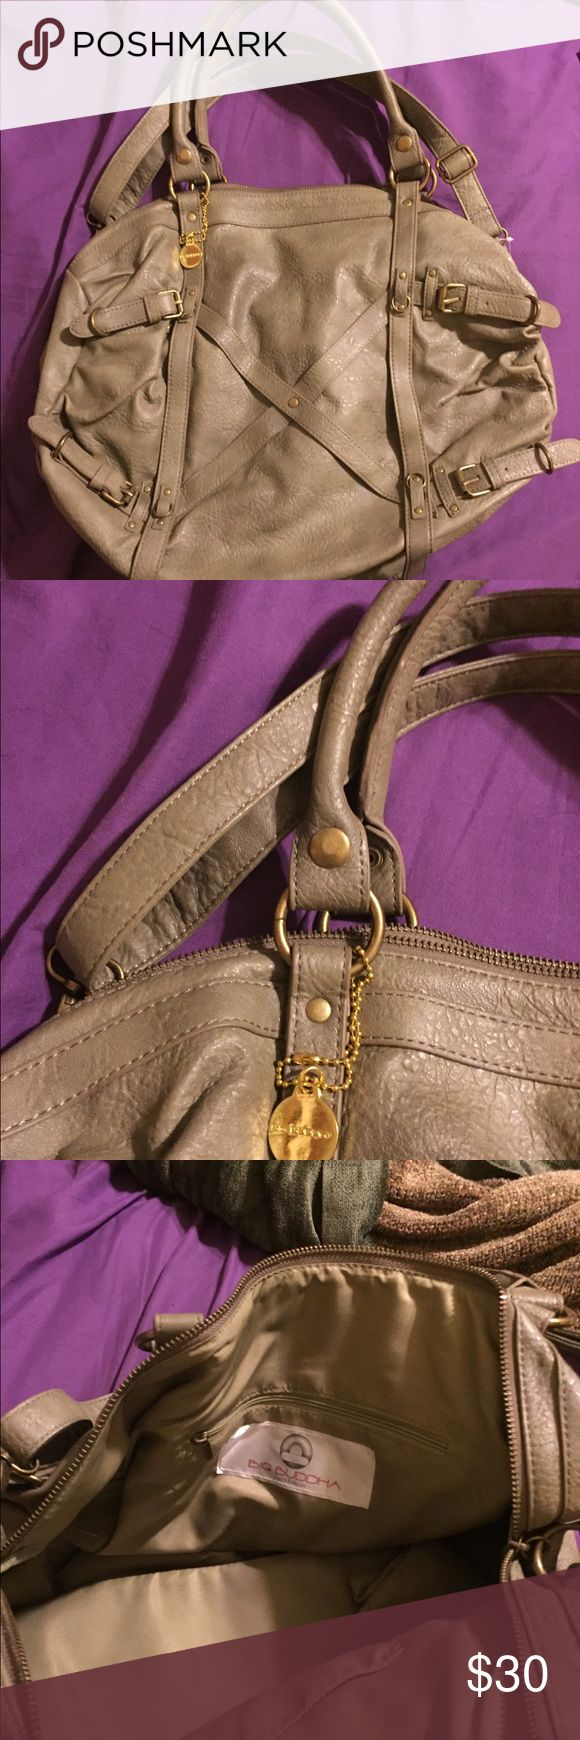 Never carried LARGE big Buddha bag Super large never carried olive green bag from big Buddha, this bag has been collecting dust in my closet. It's an amazingly beautiful bag and deserves to be carried! Big Buddha Bags Hobos